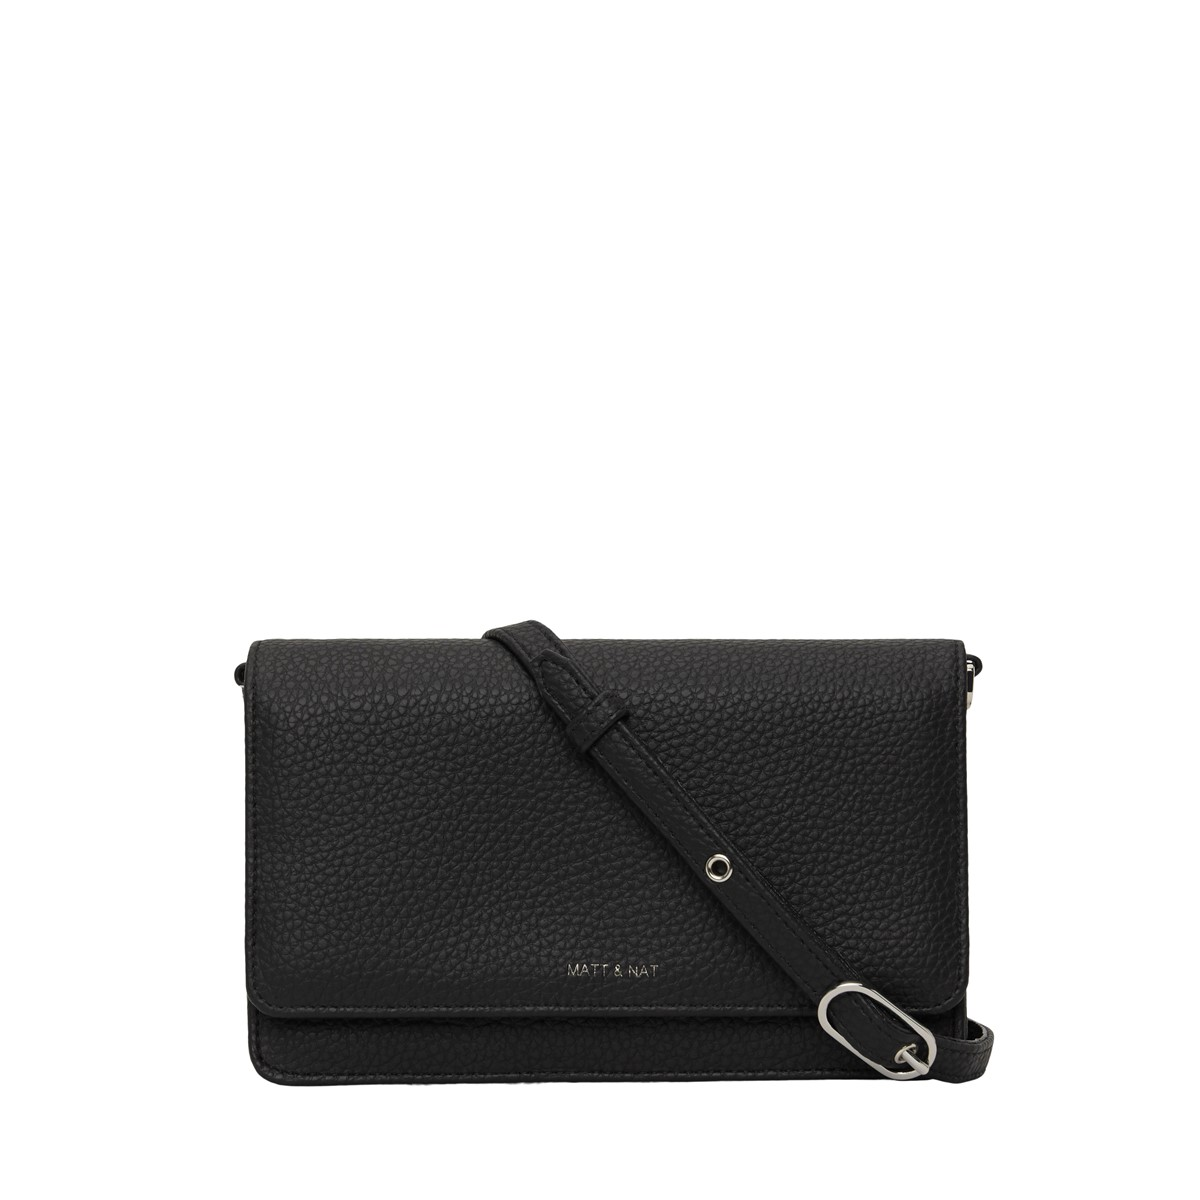 Bee Crossbody Bag in Black